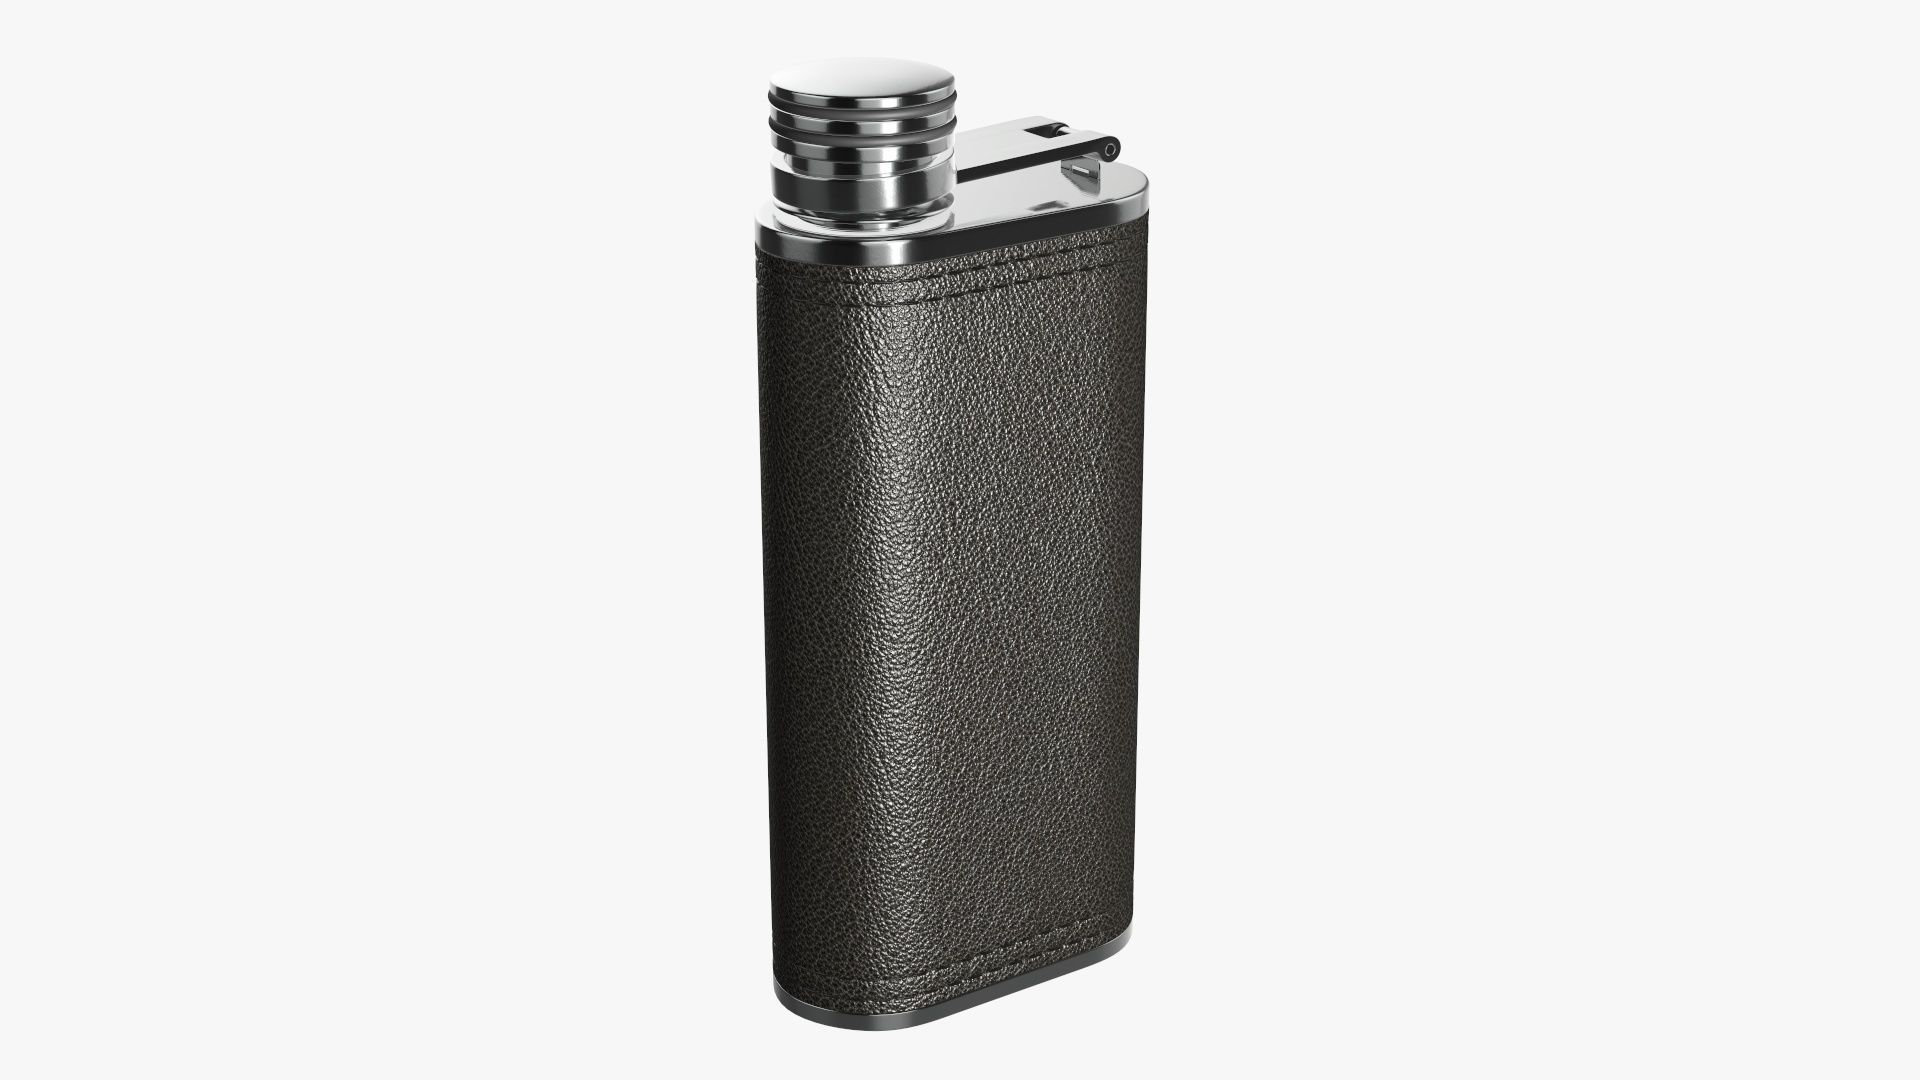 Liquor flask stainless steel leather wrap 03